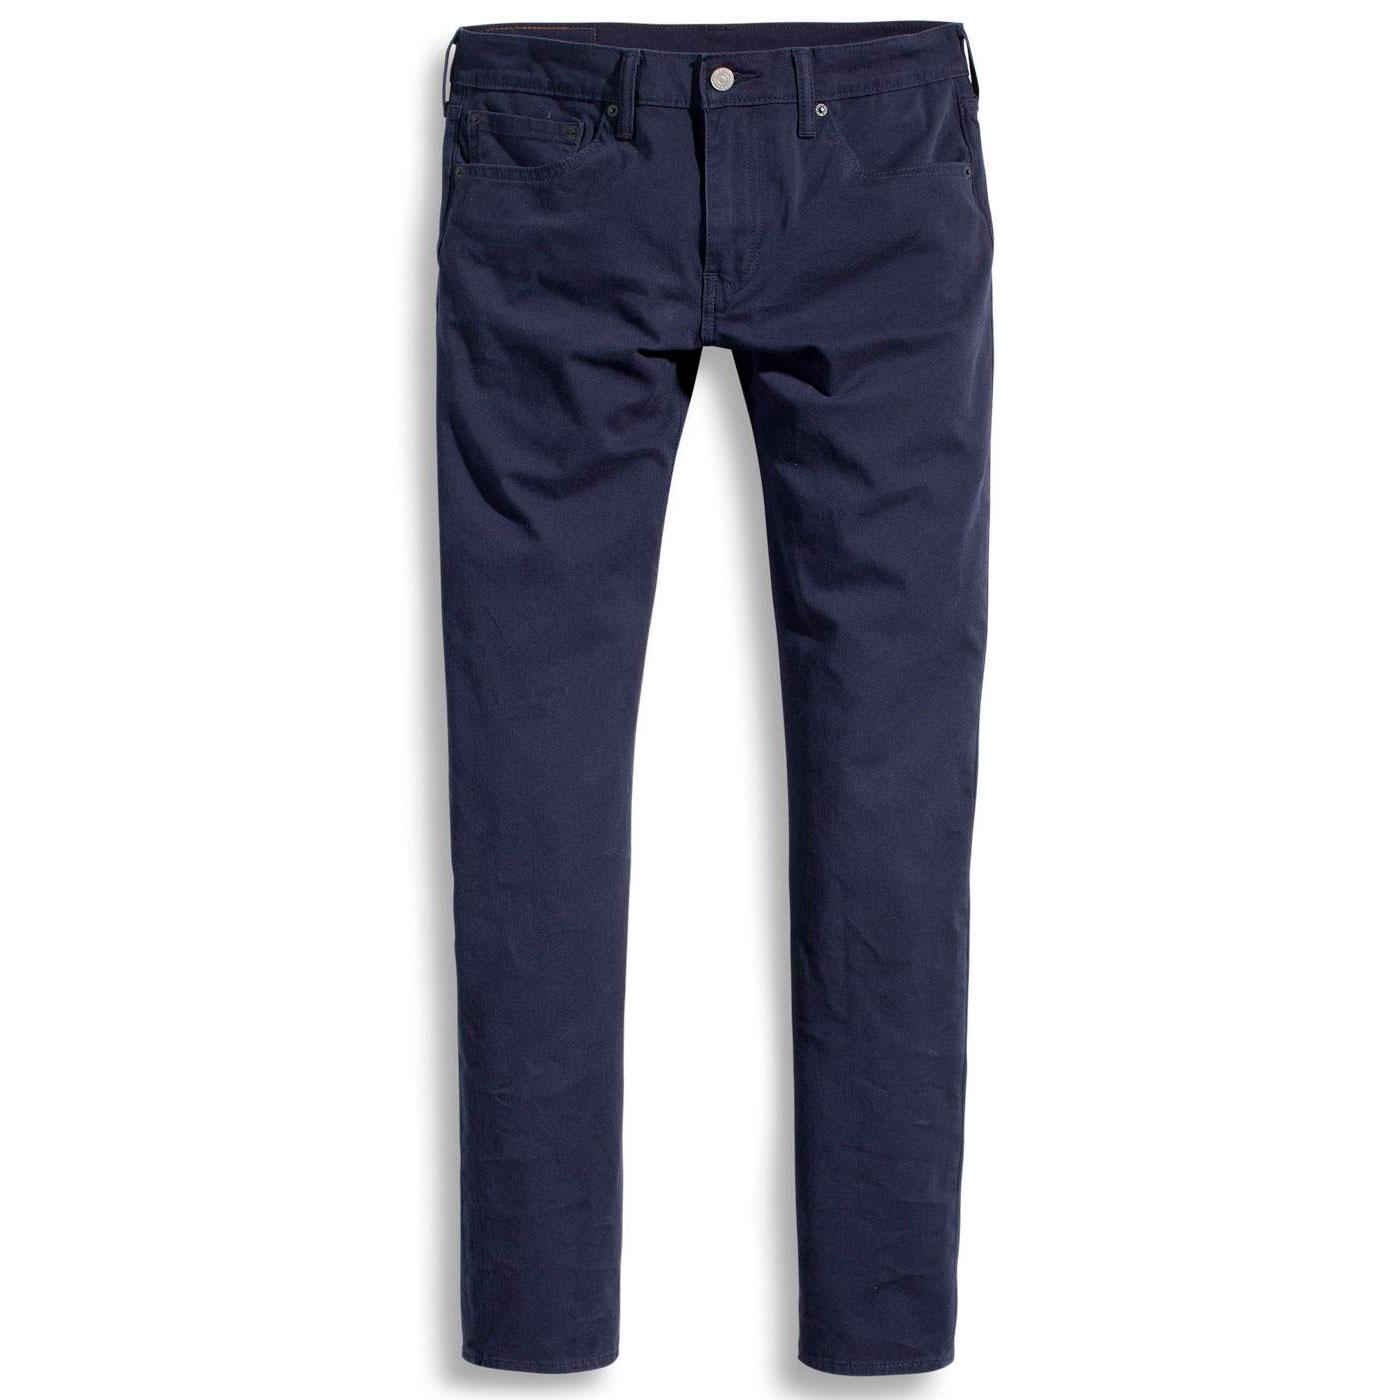 LEVI'S 512 Mens Retro Slim Taper Chinos NIGHTWATCH